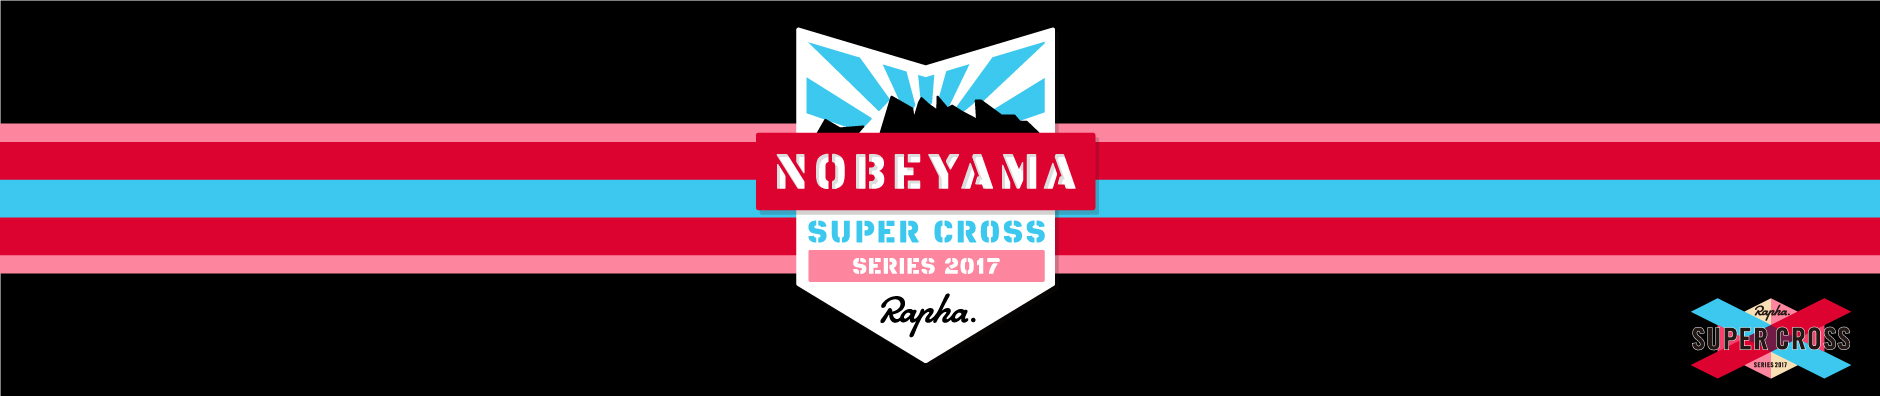 Rapha Super Cross NOBEYAMA